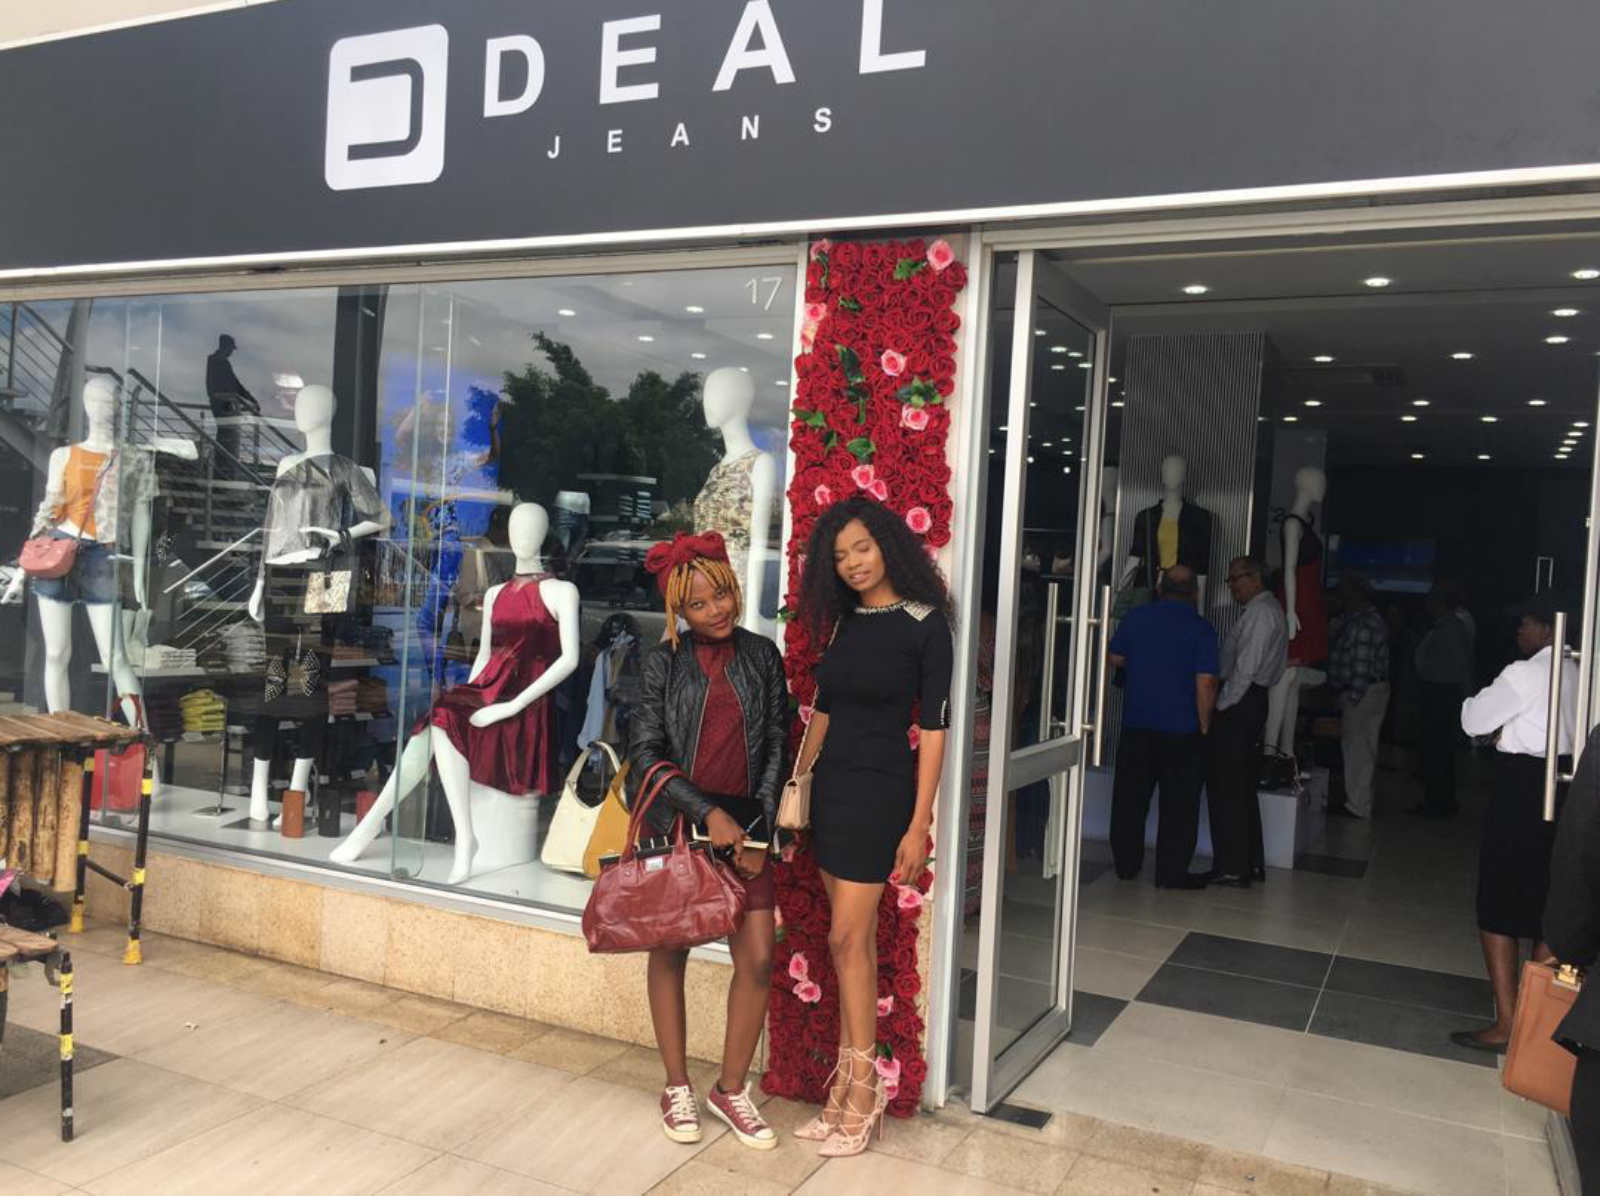 Deal Jeans Gaborone sebele centre